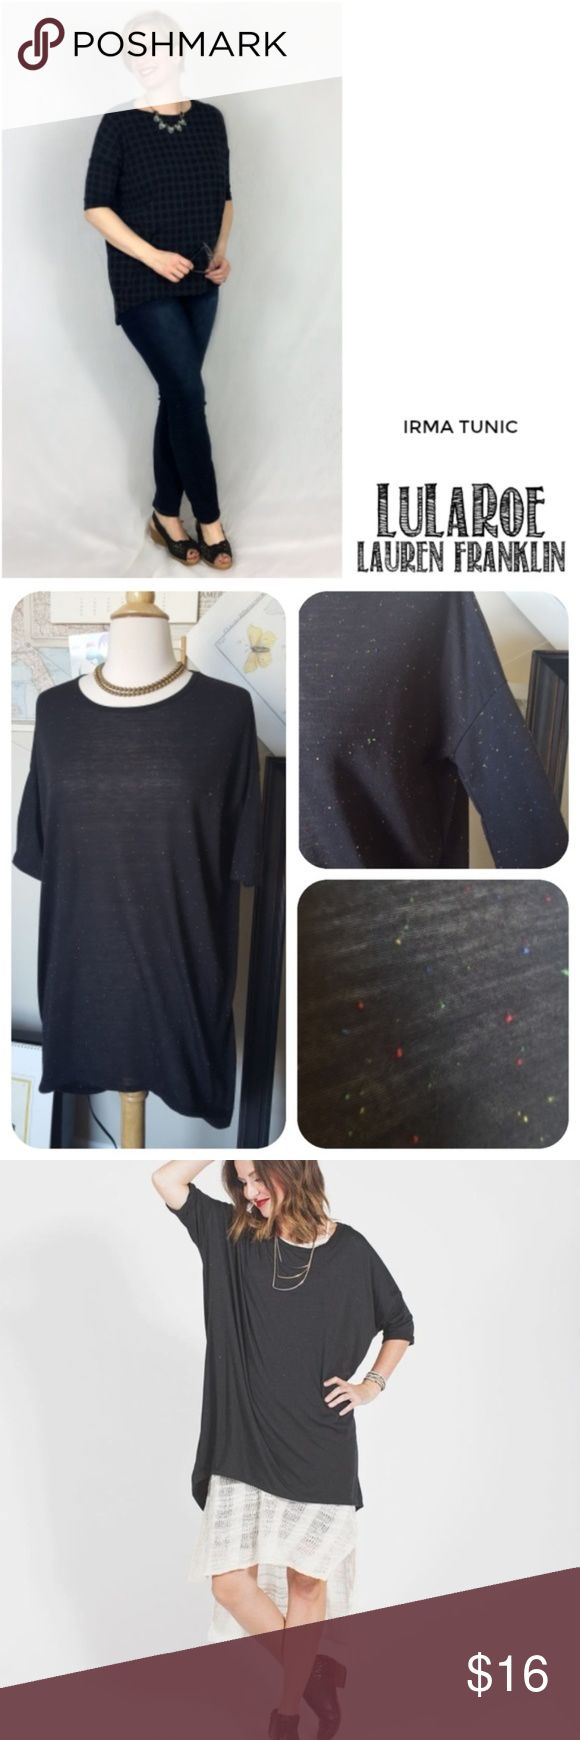 """LulaRoe Irma Top in Black Confetti LuLaRoe's Irma top is a loose, knit """"high-low"""" tunic with fitted mid -length sleeves. The extra length in the back makes it a great compliment to our leggings – especially for all those wanting some extra coverage for their, ahem, assets. Wear this top and you might never take it off.  Black confetti colorway. Size extra extra small, but could fit larger. Excellent condition. LuLaRoe Tops Blouses"""